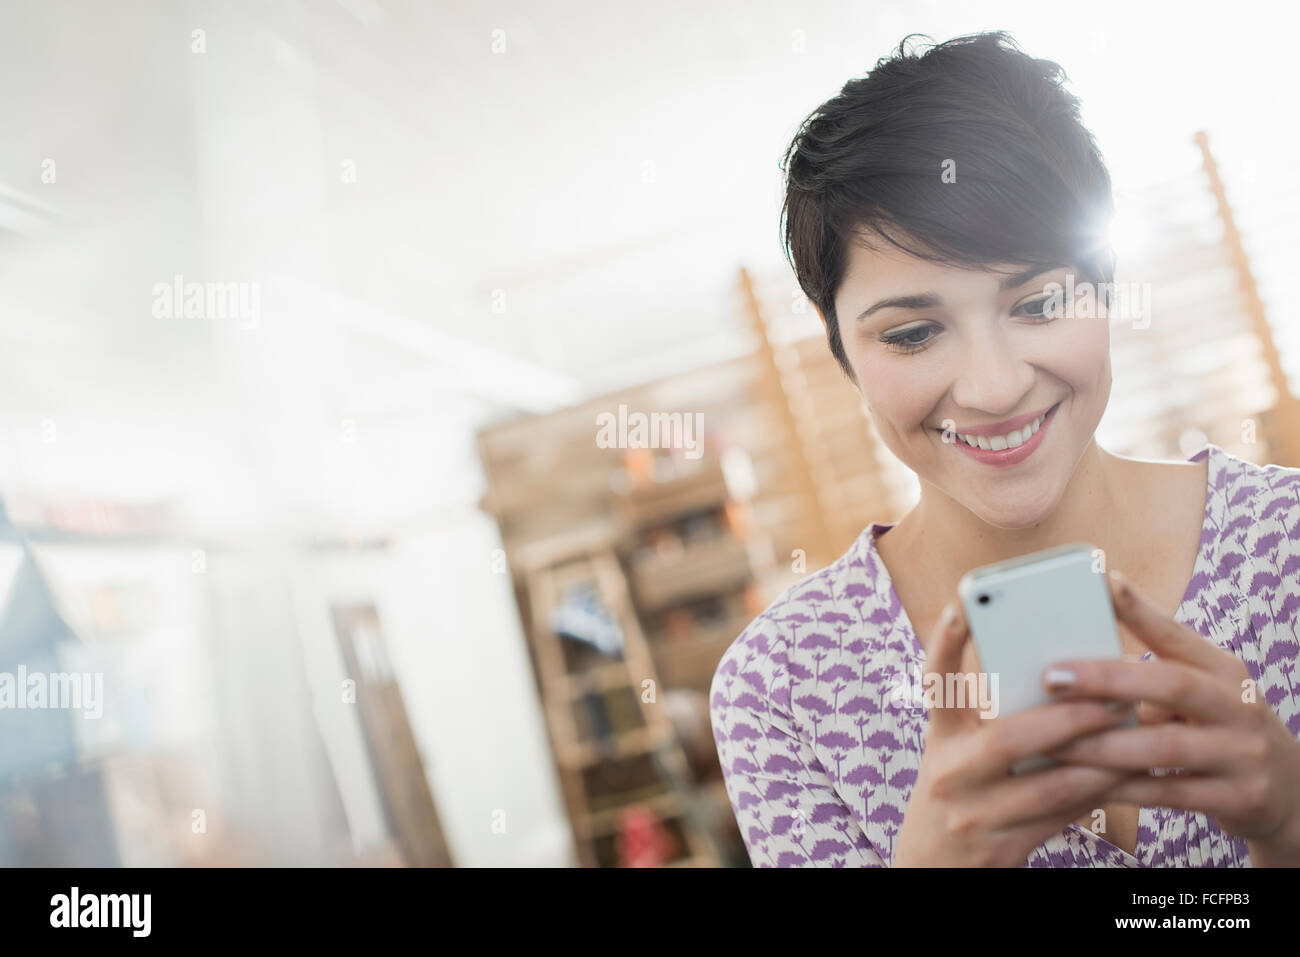 A woman checking her smart phone. - Stock Image